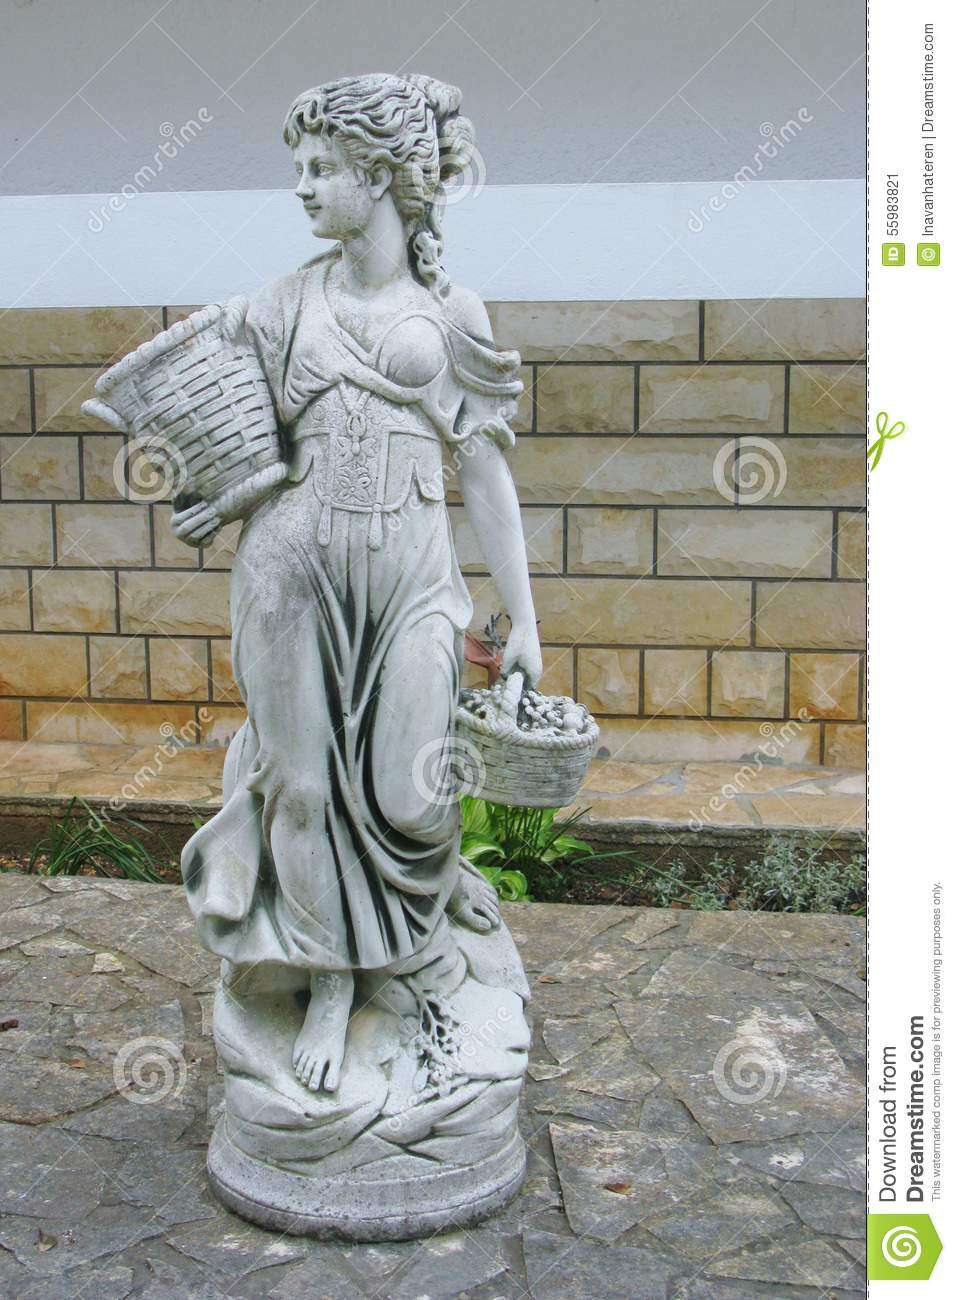 A Statue Of A Lady In A Garden Stock Photo Image 55983821